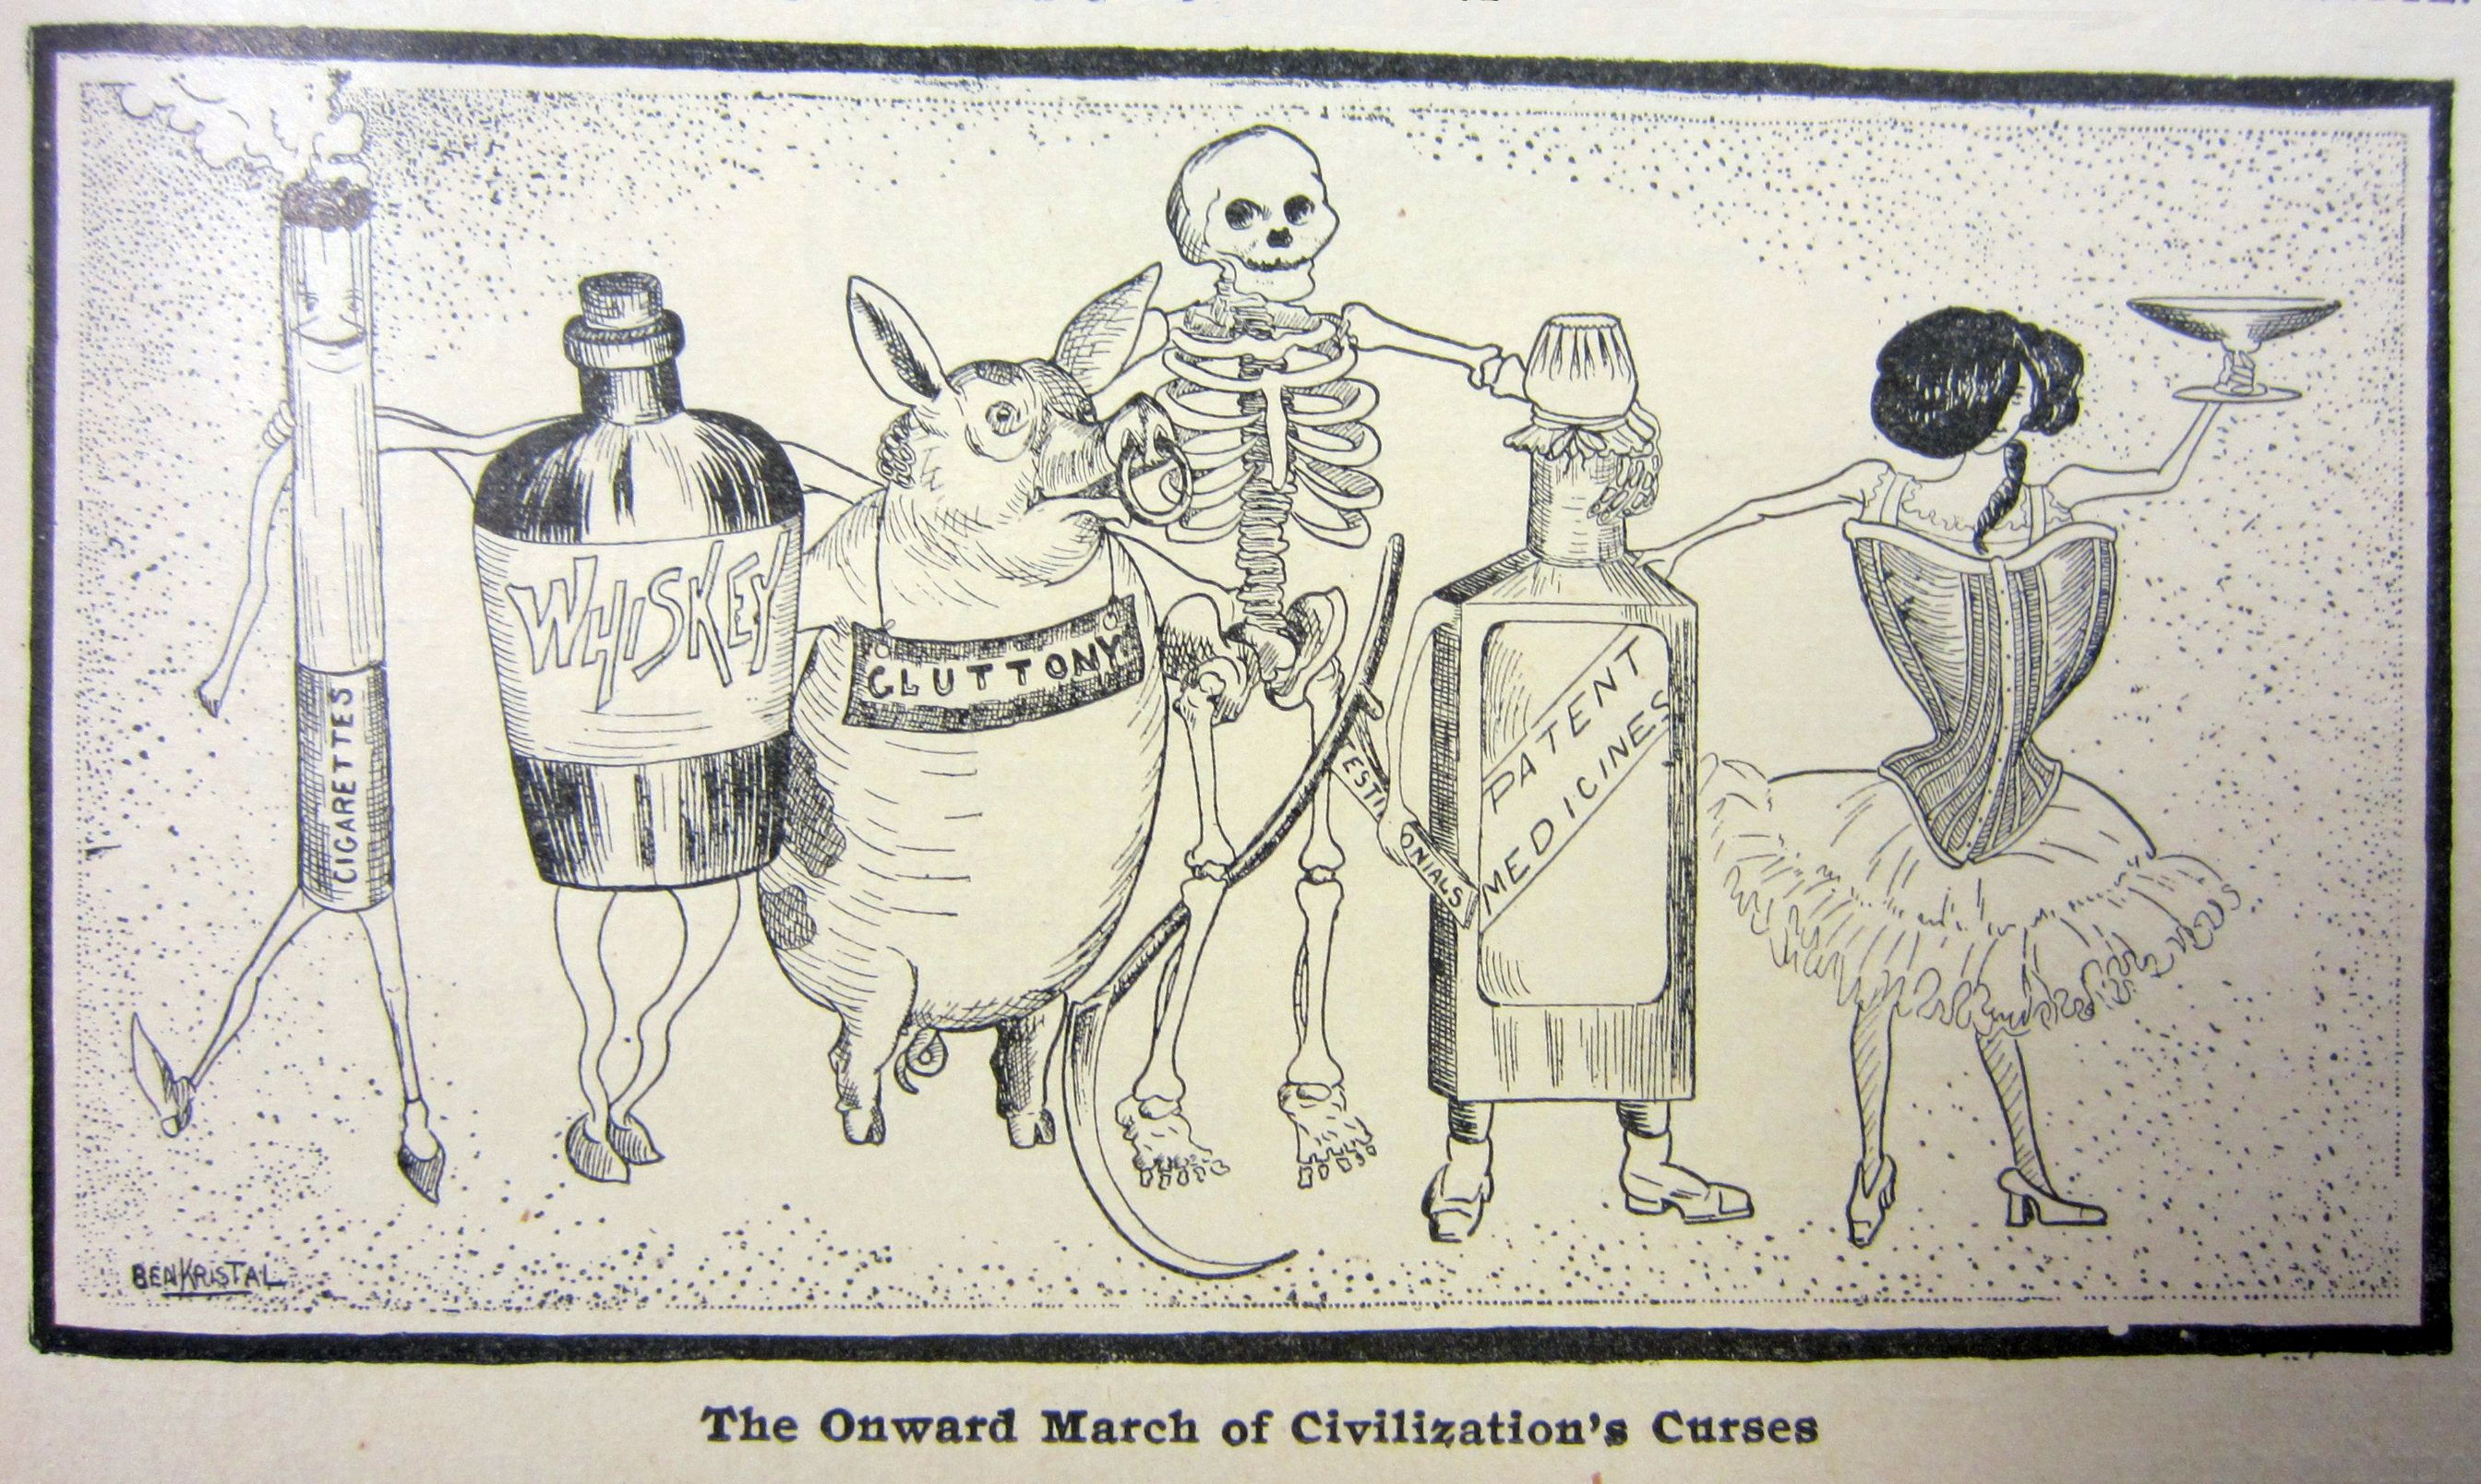 An editorial cartoon from the April 1905 edition of Physical Culture magazine denounced the trappings of modern civilization, including smoking, alcohol, overconsumption of food, patent medicines and ill-fitting clothing.